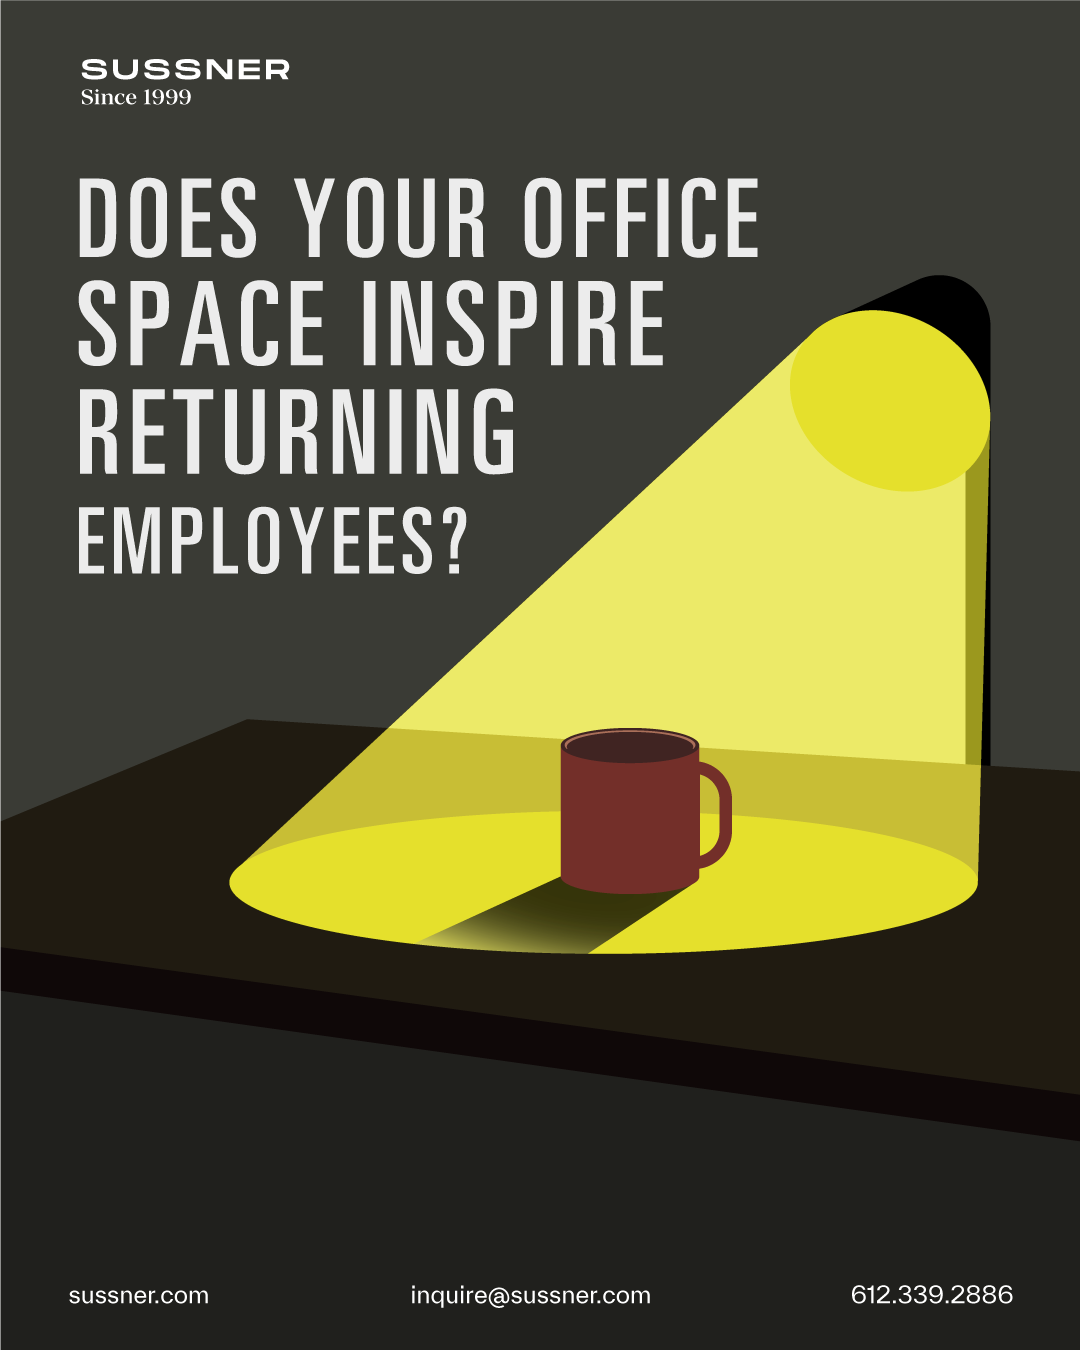 Does your office space inspire returning employees?